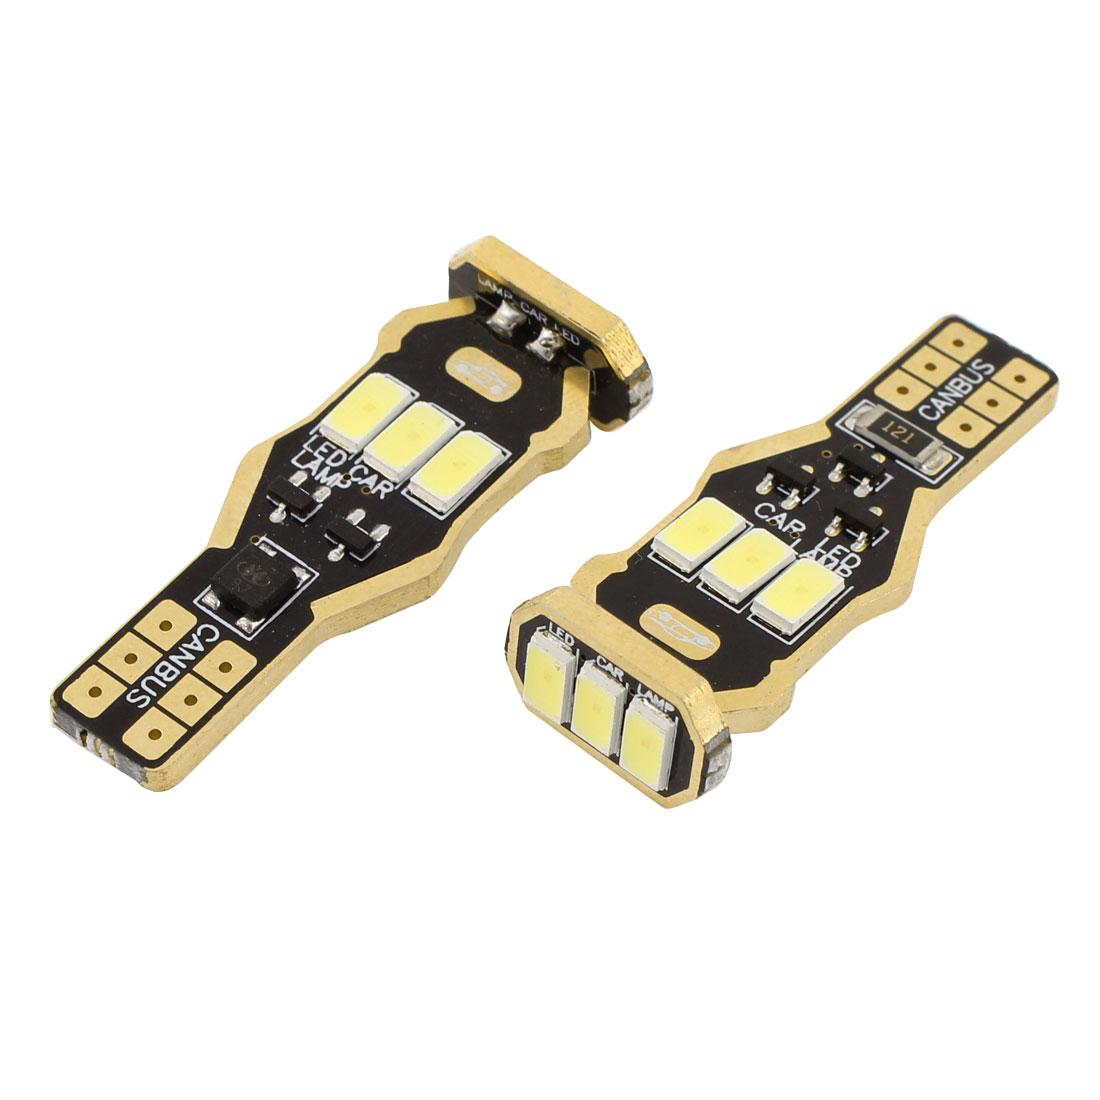 2 Pcs T10 W5W 5630 9-SMD LED Canbus Dashboard Light Signal Bulbs White Internal